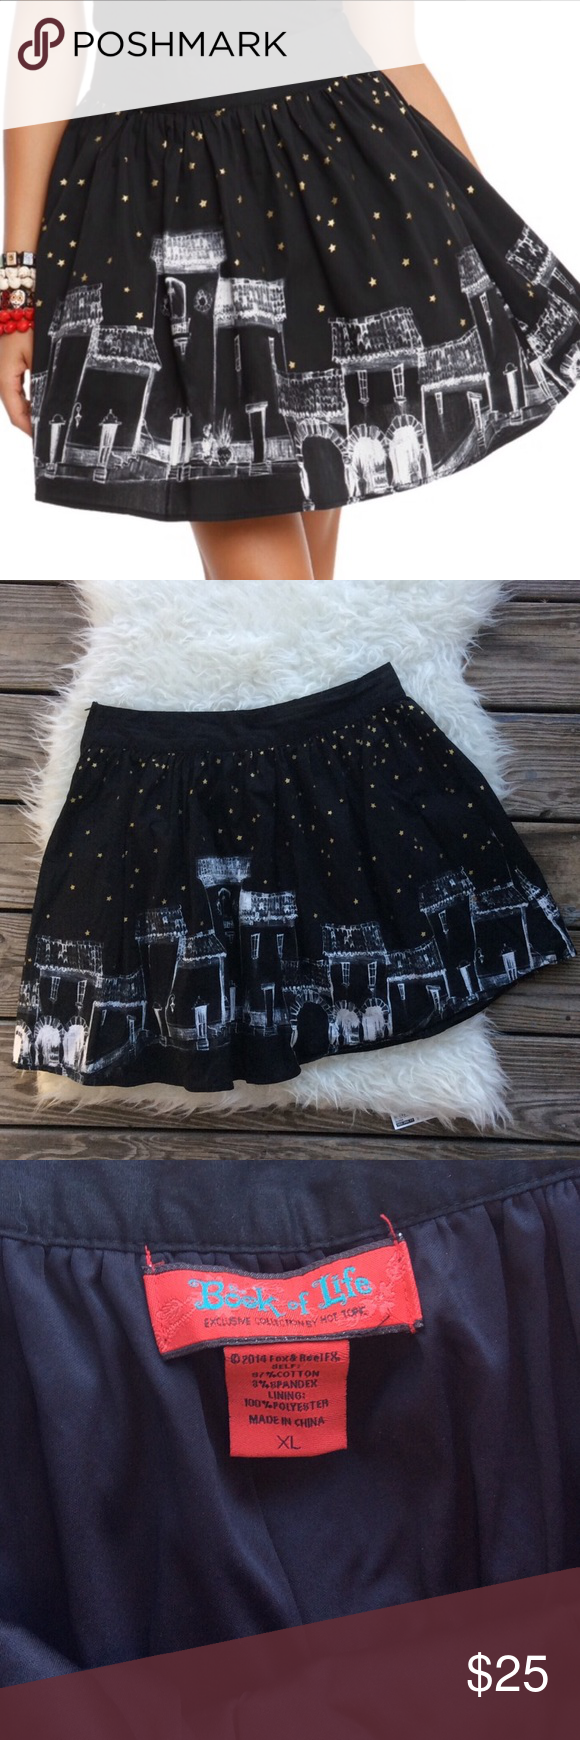 """Book of Life Evening Skyline Circle Skirt Excellent condition Book of Life Evening Skyline Circle Skirt from Hot Topic. Size XL. 97% cotton, 3% spandex, fully lined in 100% polyester. Waistband 33"""", length 18.5"""". No trades, offers welcome. Bundle to save more! Hot Topic Skirts Circle & Skater"""